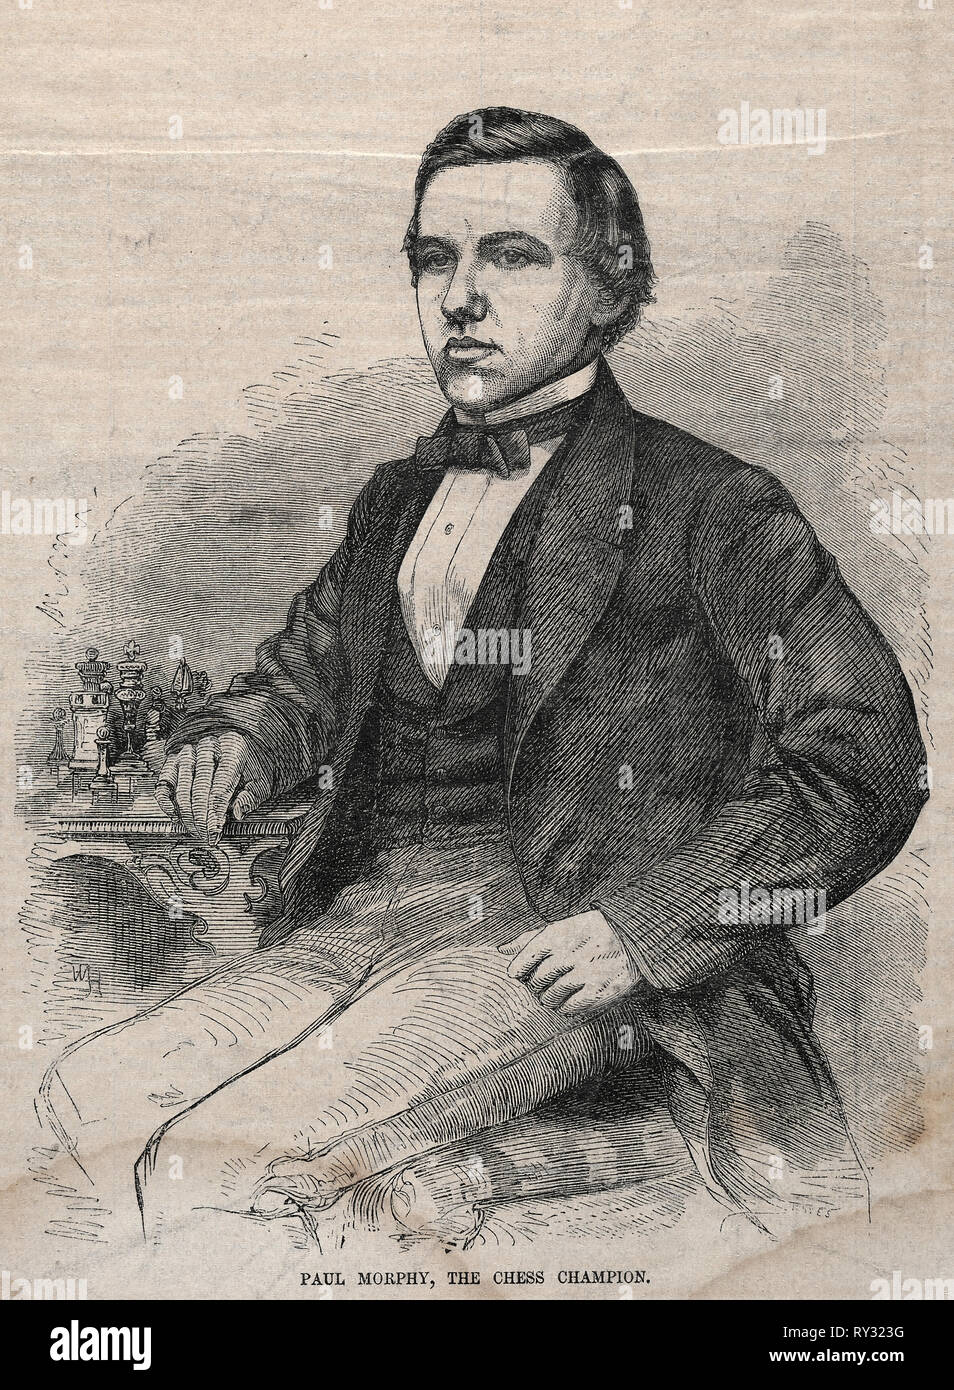 Paul Morphy, The Chess Champion, 1859. Winslow Homer (American, 1836-1910). Wood engraving - Stock Image